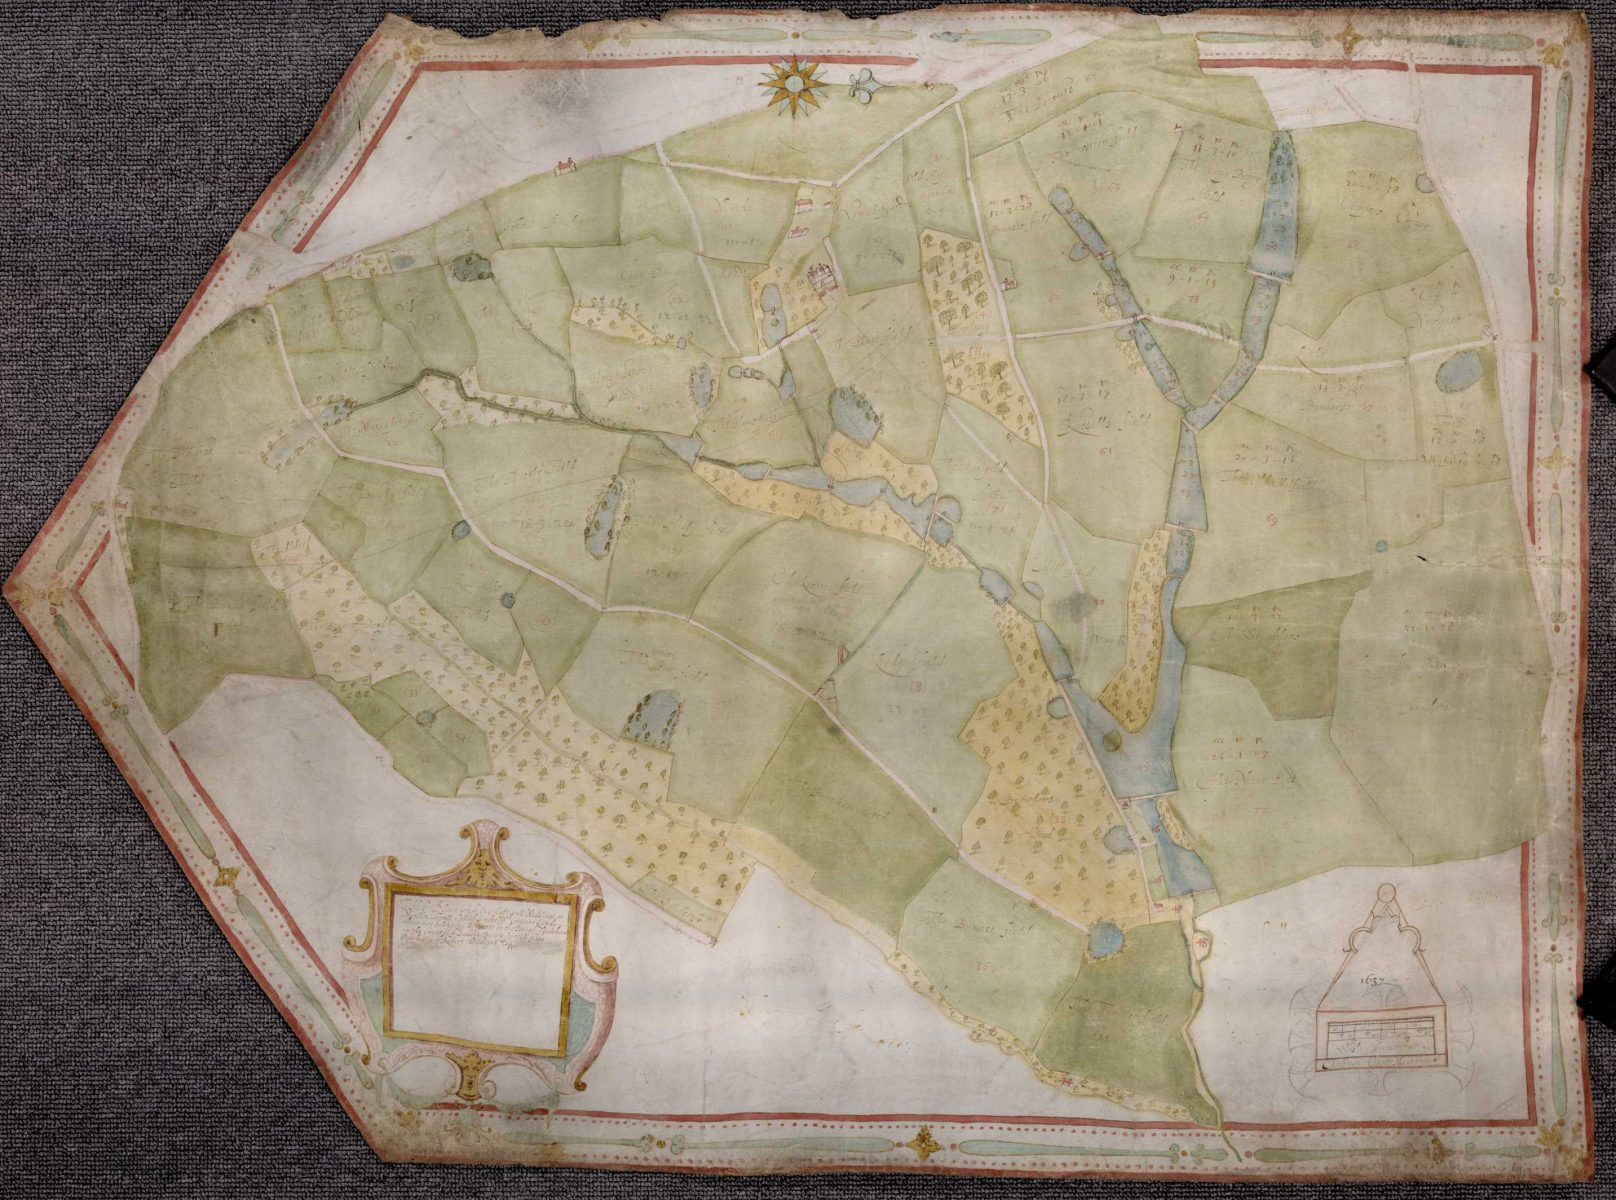 Map of Robert Wildgoose's capital messuage called Iridge in Salehurst by Ambrose Cogger